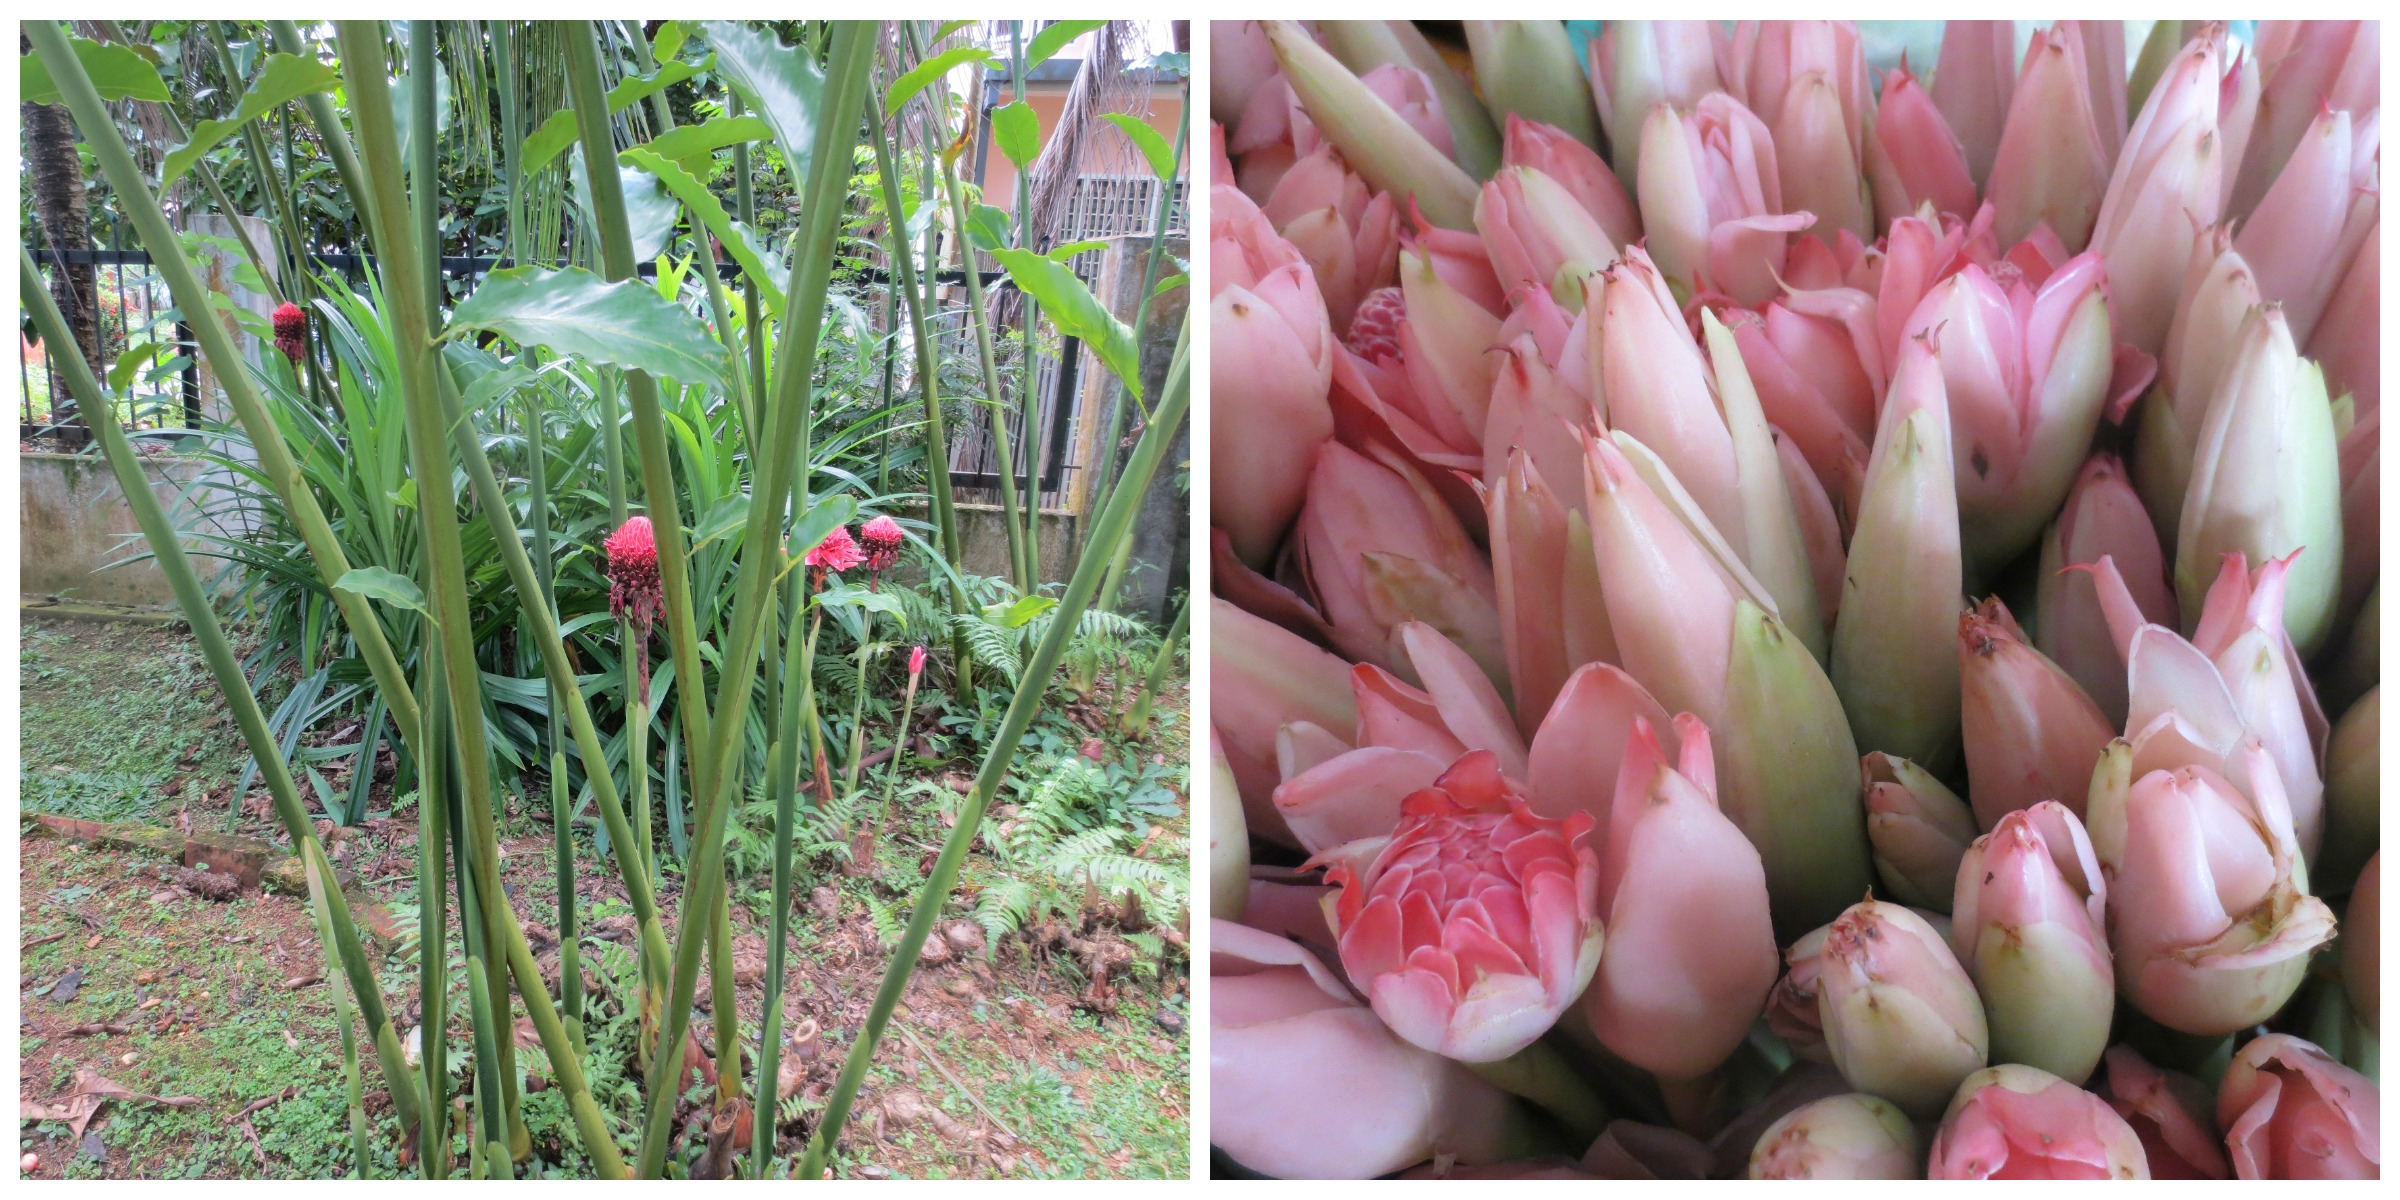 Left-Bunga kantan plants growing in my old neighbour's garden Right - Pink bunga kantan for sale at the market